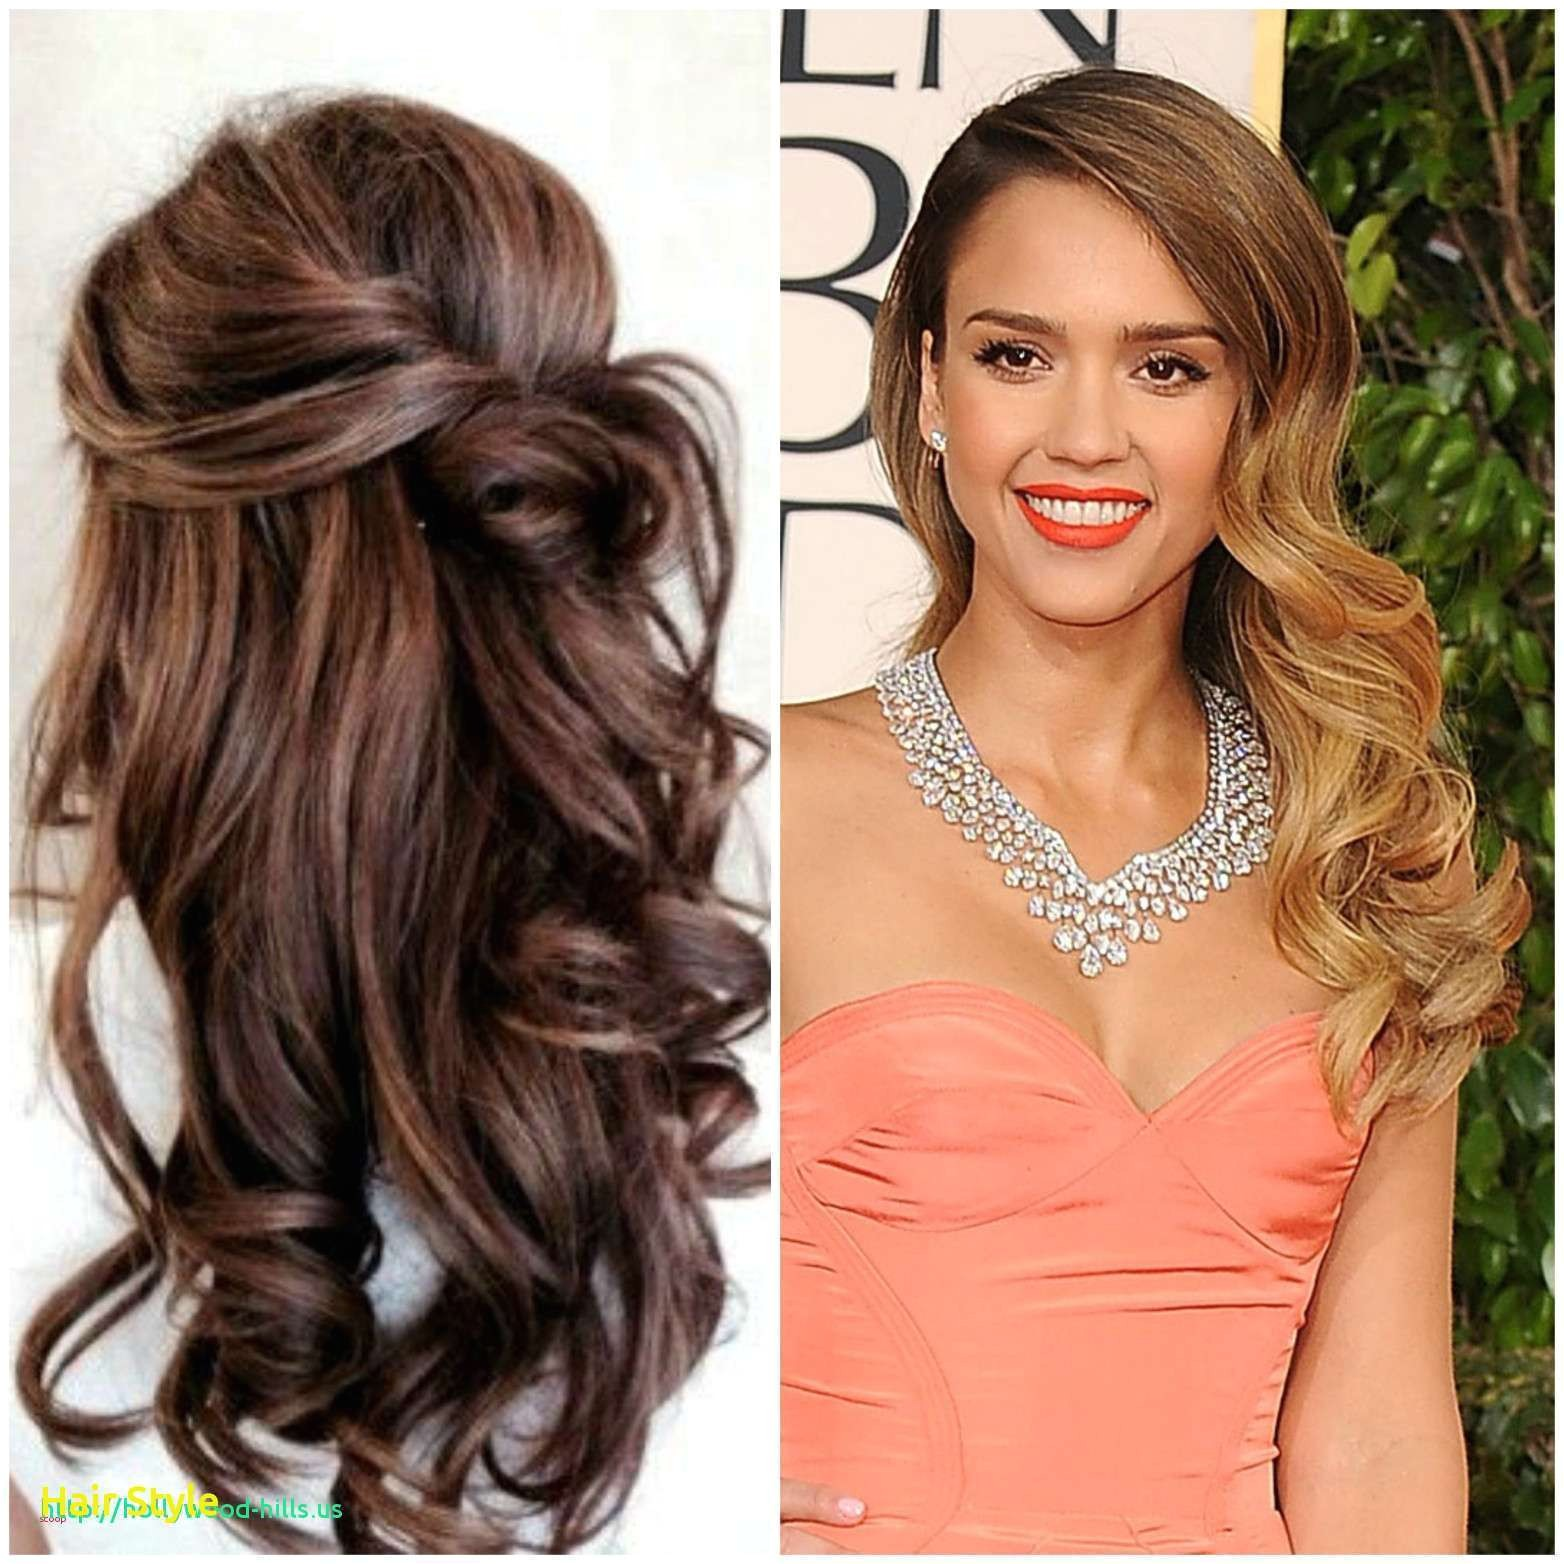 Simple Hairstyle Of Girls Inspirational Simple and Easy Hairstyle